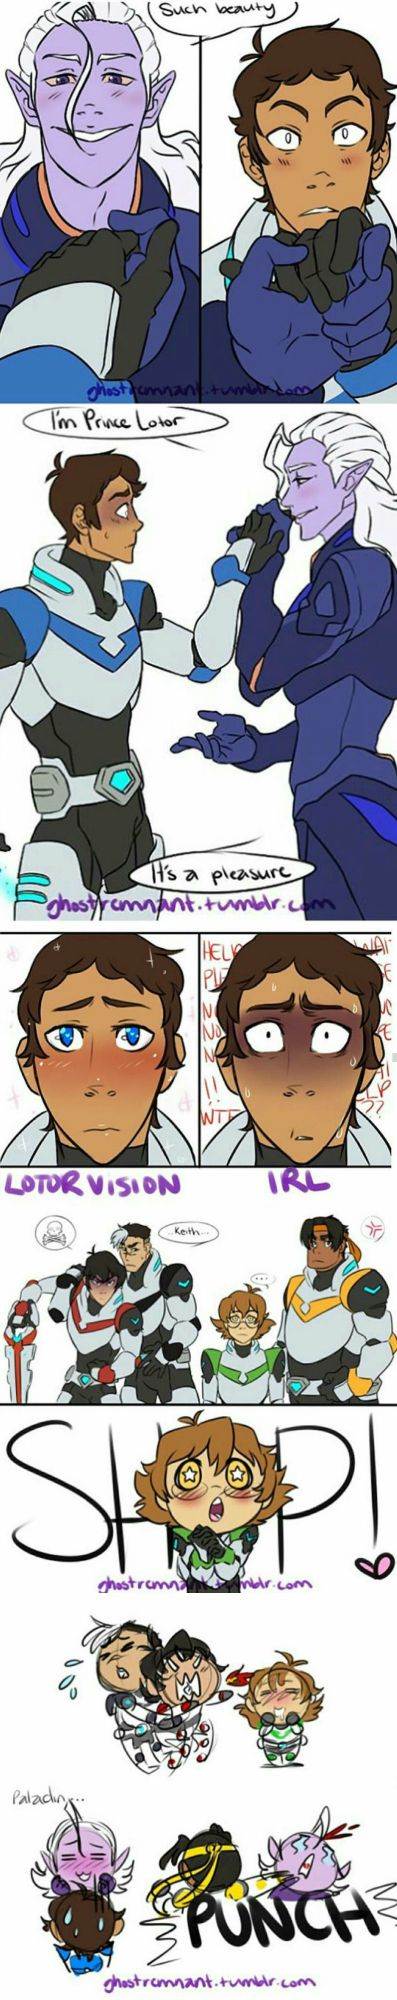 don't ship lotor and lance, but this would be hilarious in an episode